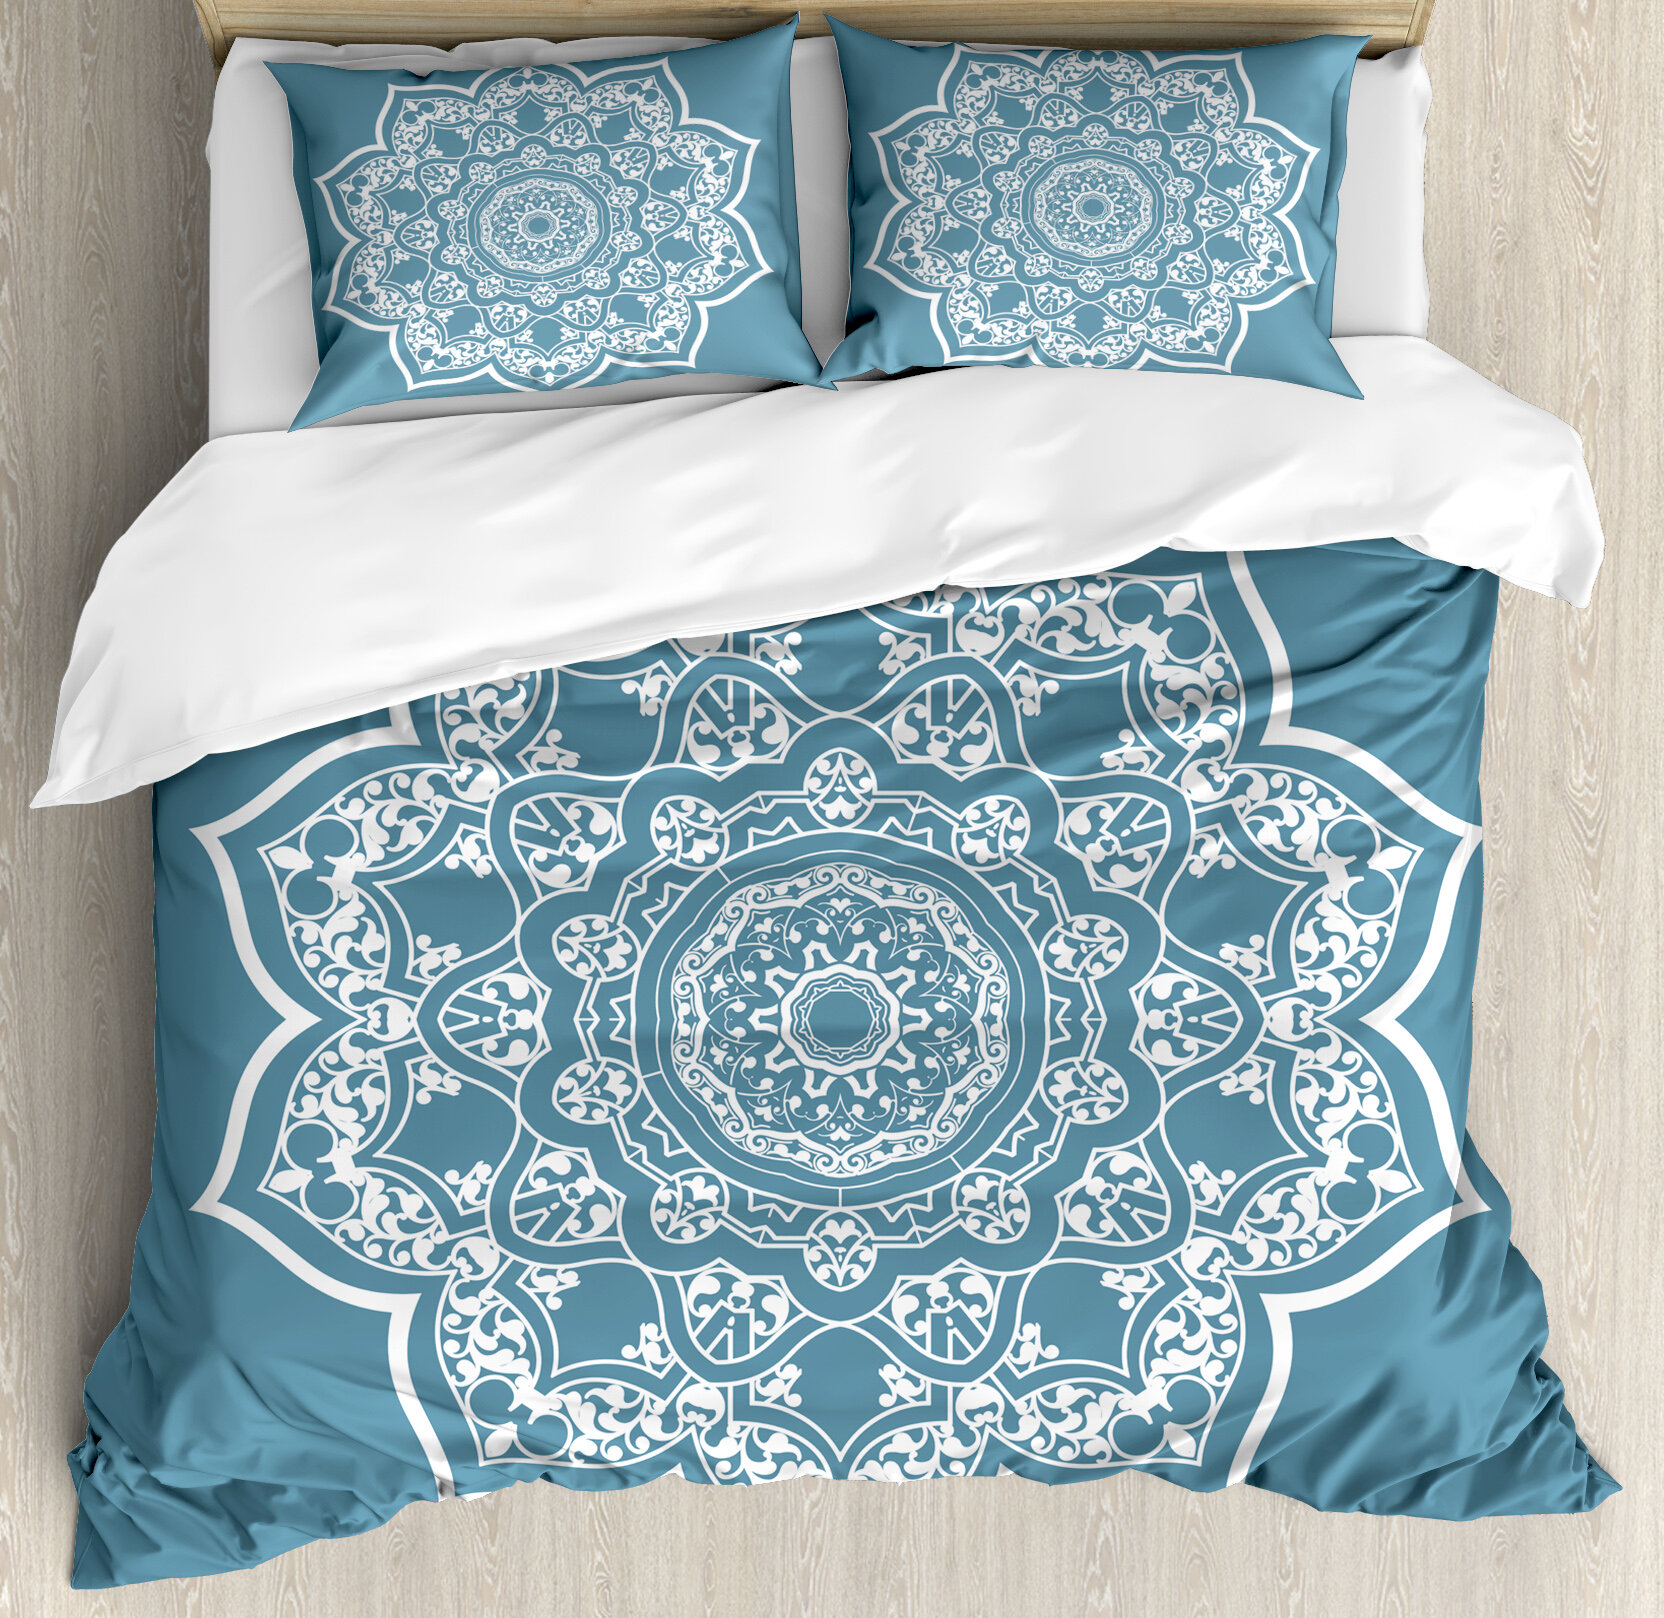 Gentil Lotus Cultural Ethnic Universe Symbol Floral Mandala With Lace Effects Boho  Motif Duvet Cover Set